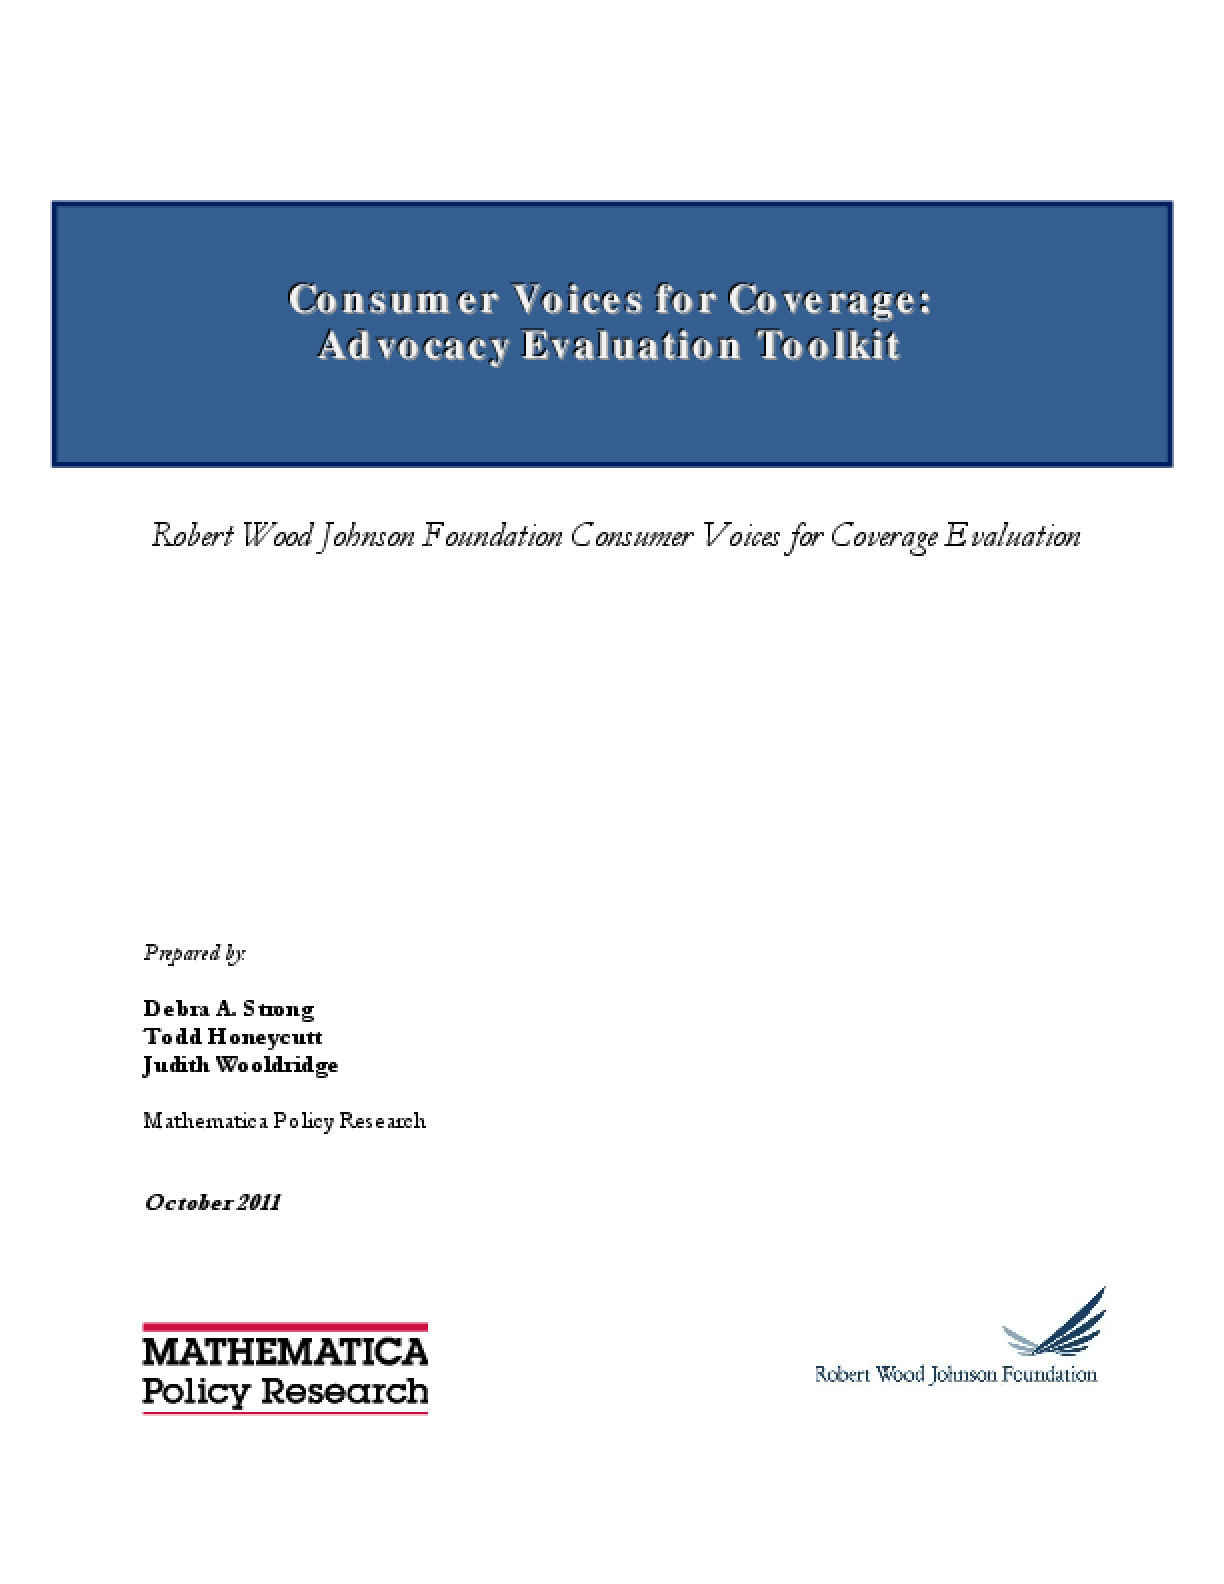 Consumer Voices for Coverage: Advocacy Evaluation Toolkit